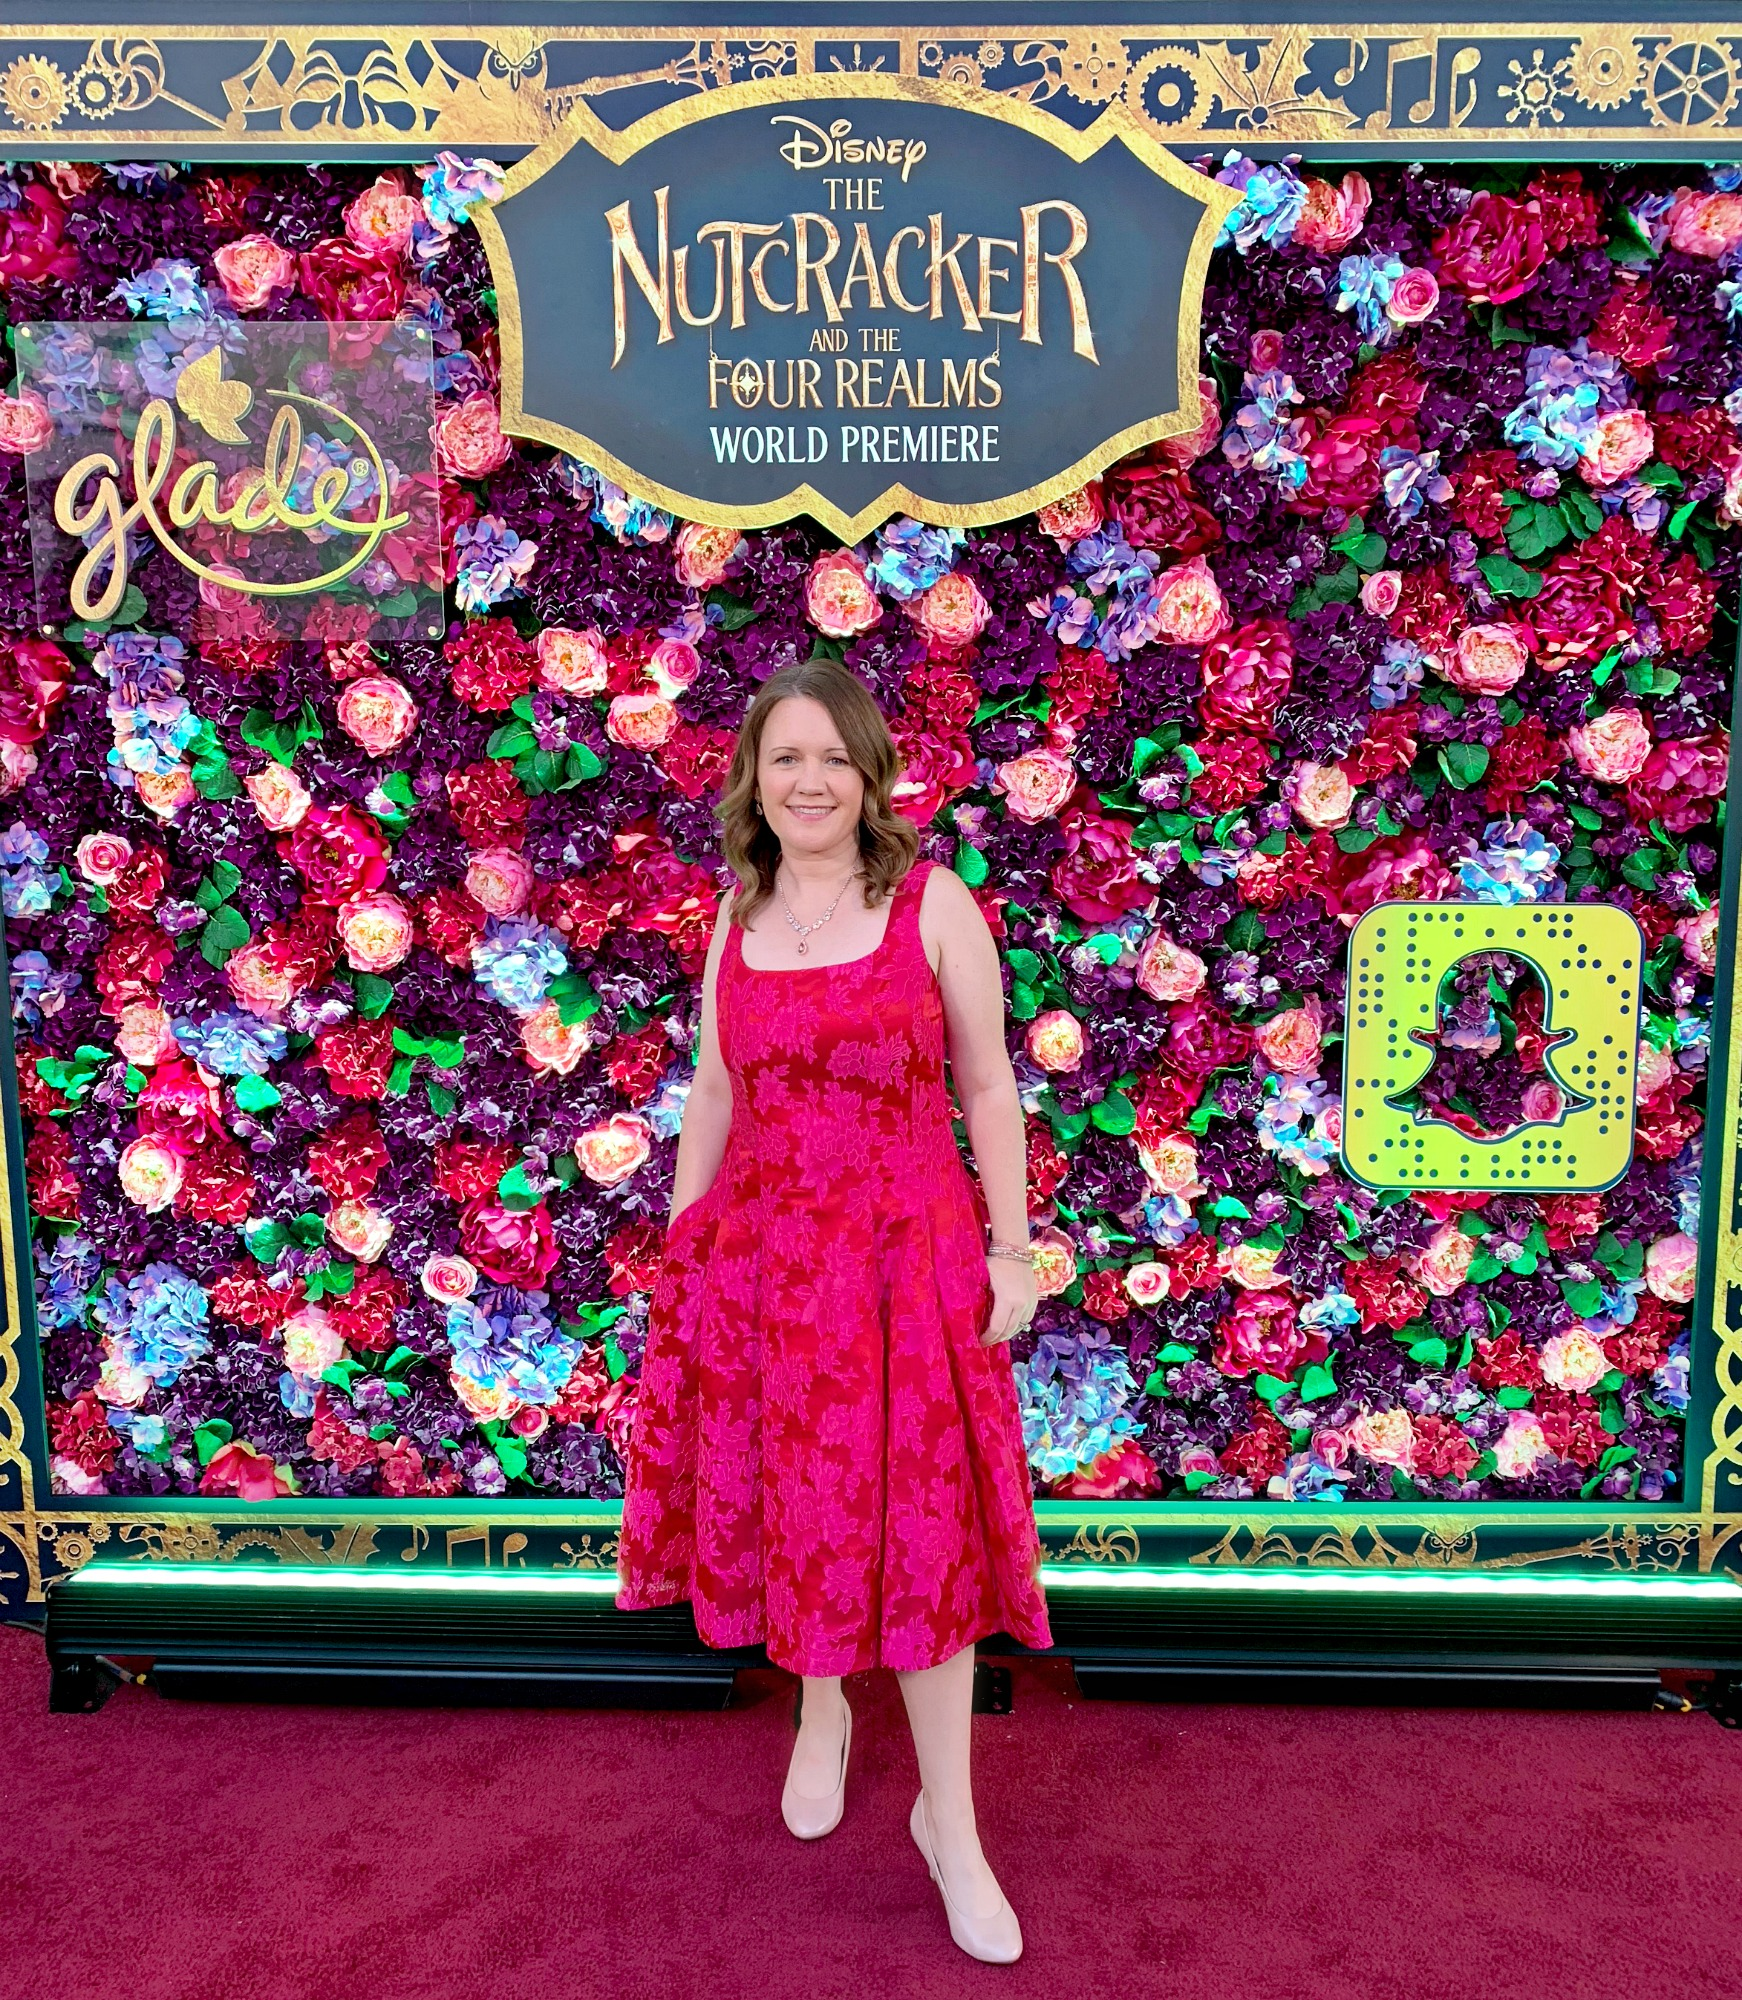 Dwan at Disney's Nutcracker and Four Realms World Premiere